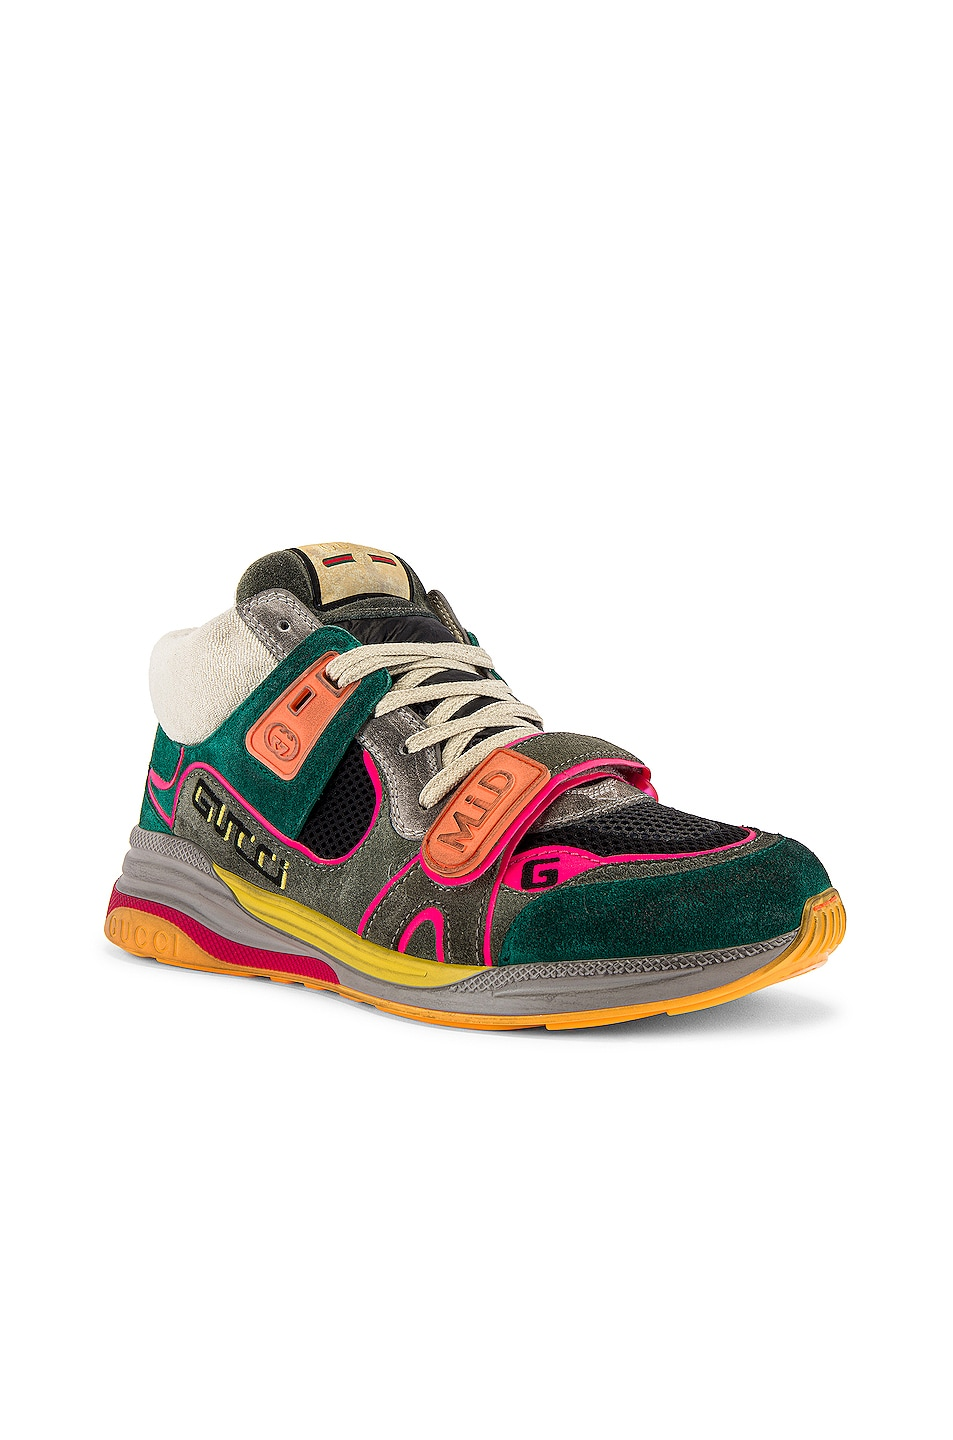 Image 1 of Gucci G Line Mid Low Top Sneaker in Grey & Green